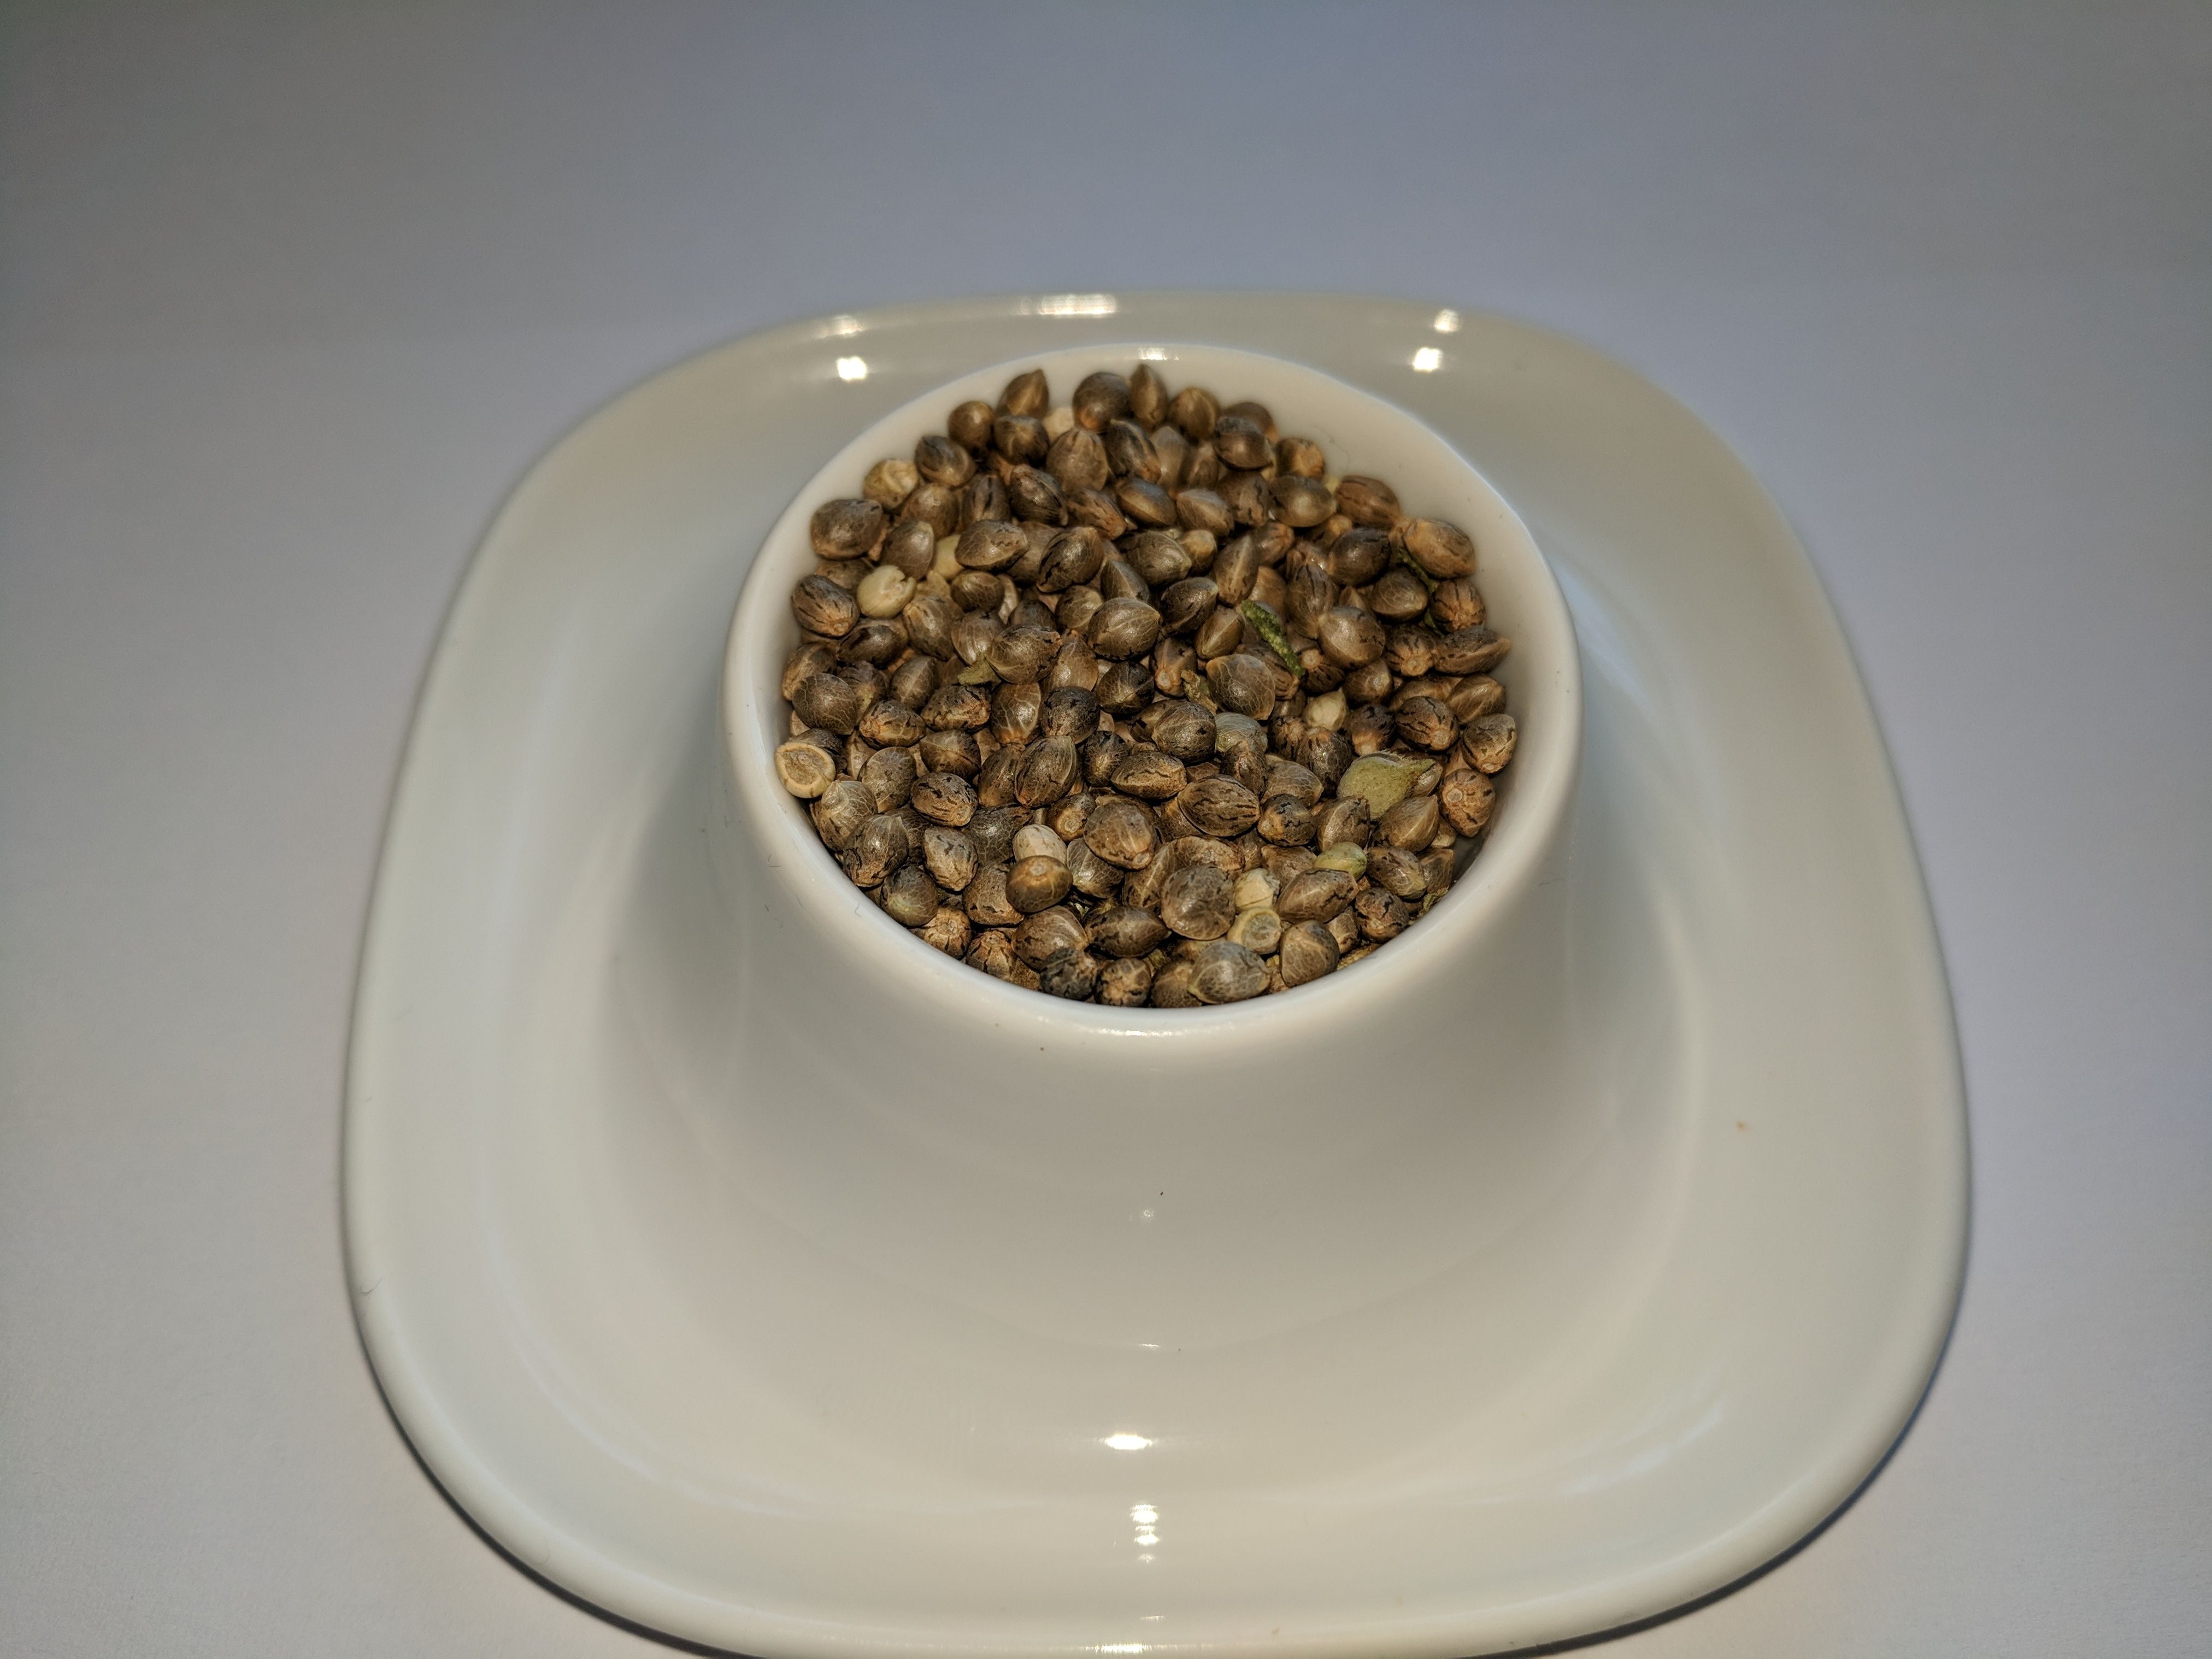 420seedcompetitioneggcup.jpg